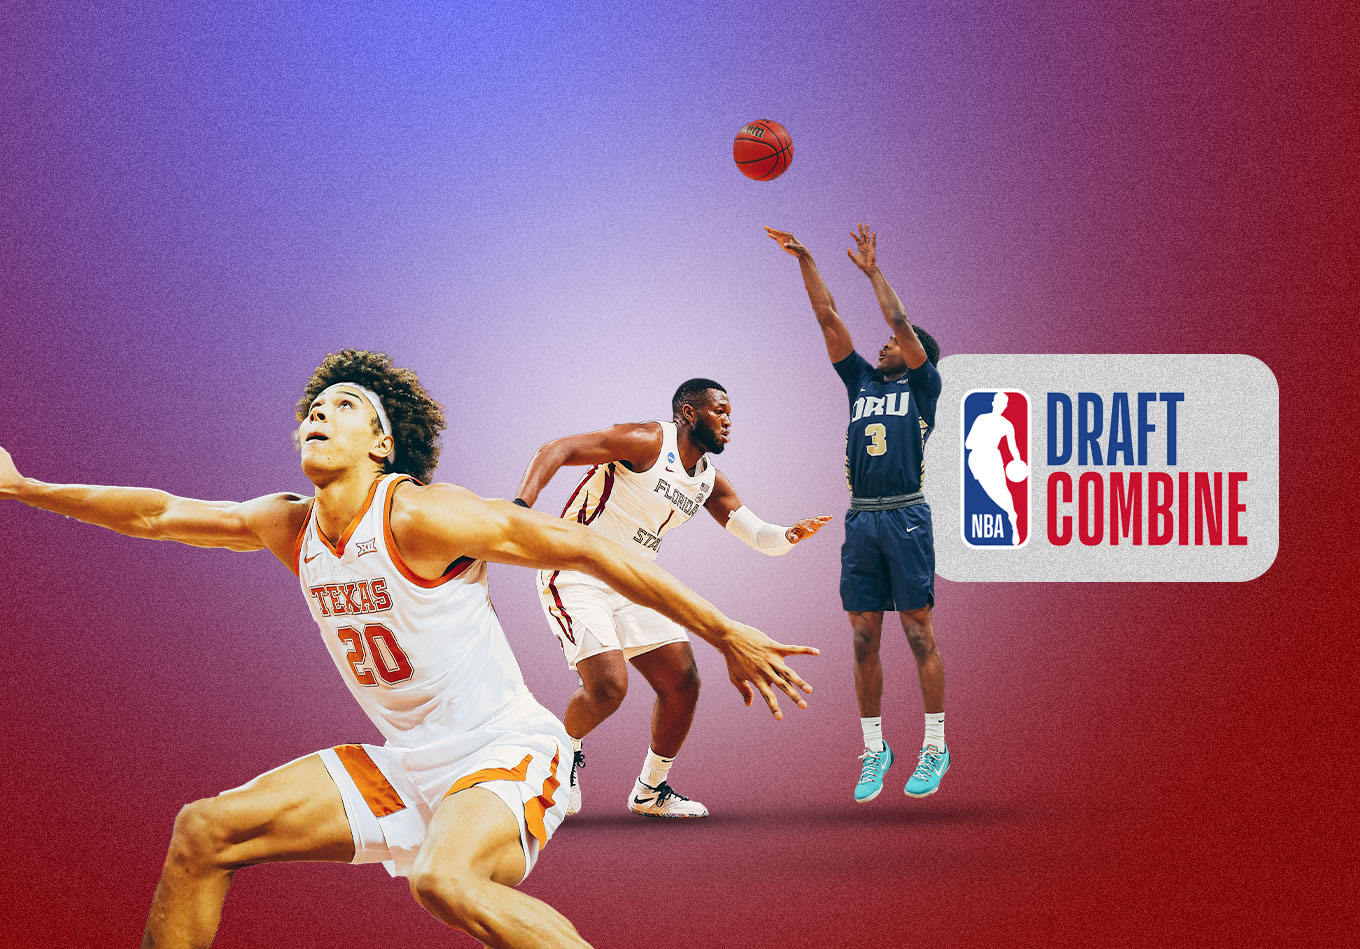 The Draft Files: Which Combine Prospects Have the Best Micro-Skills Through Tracking Data?